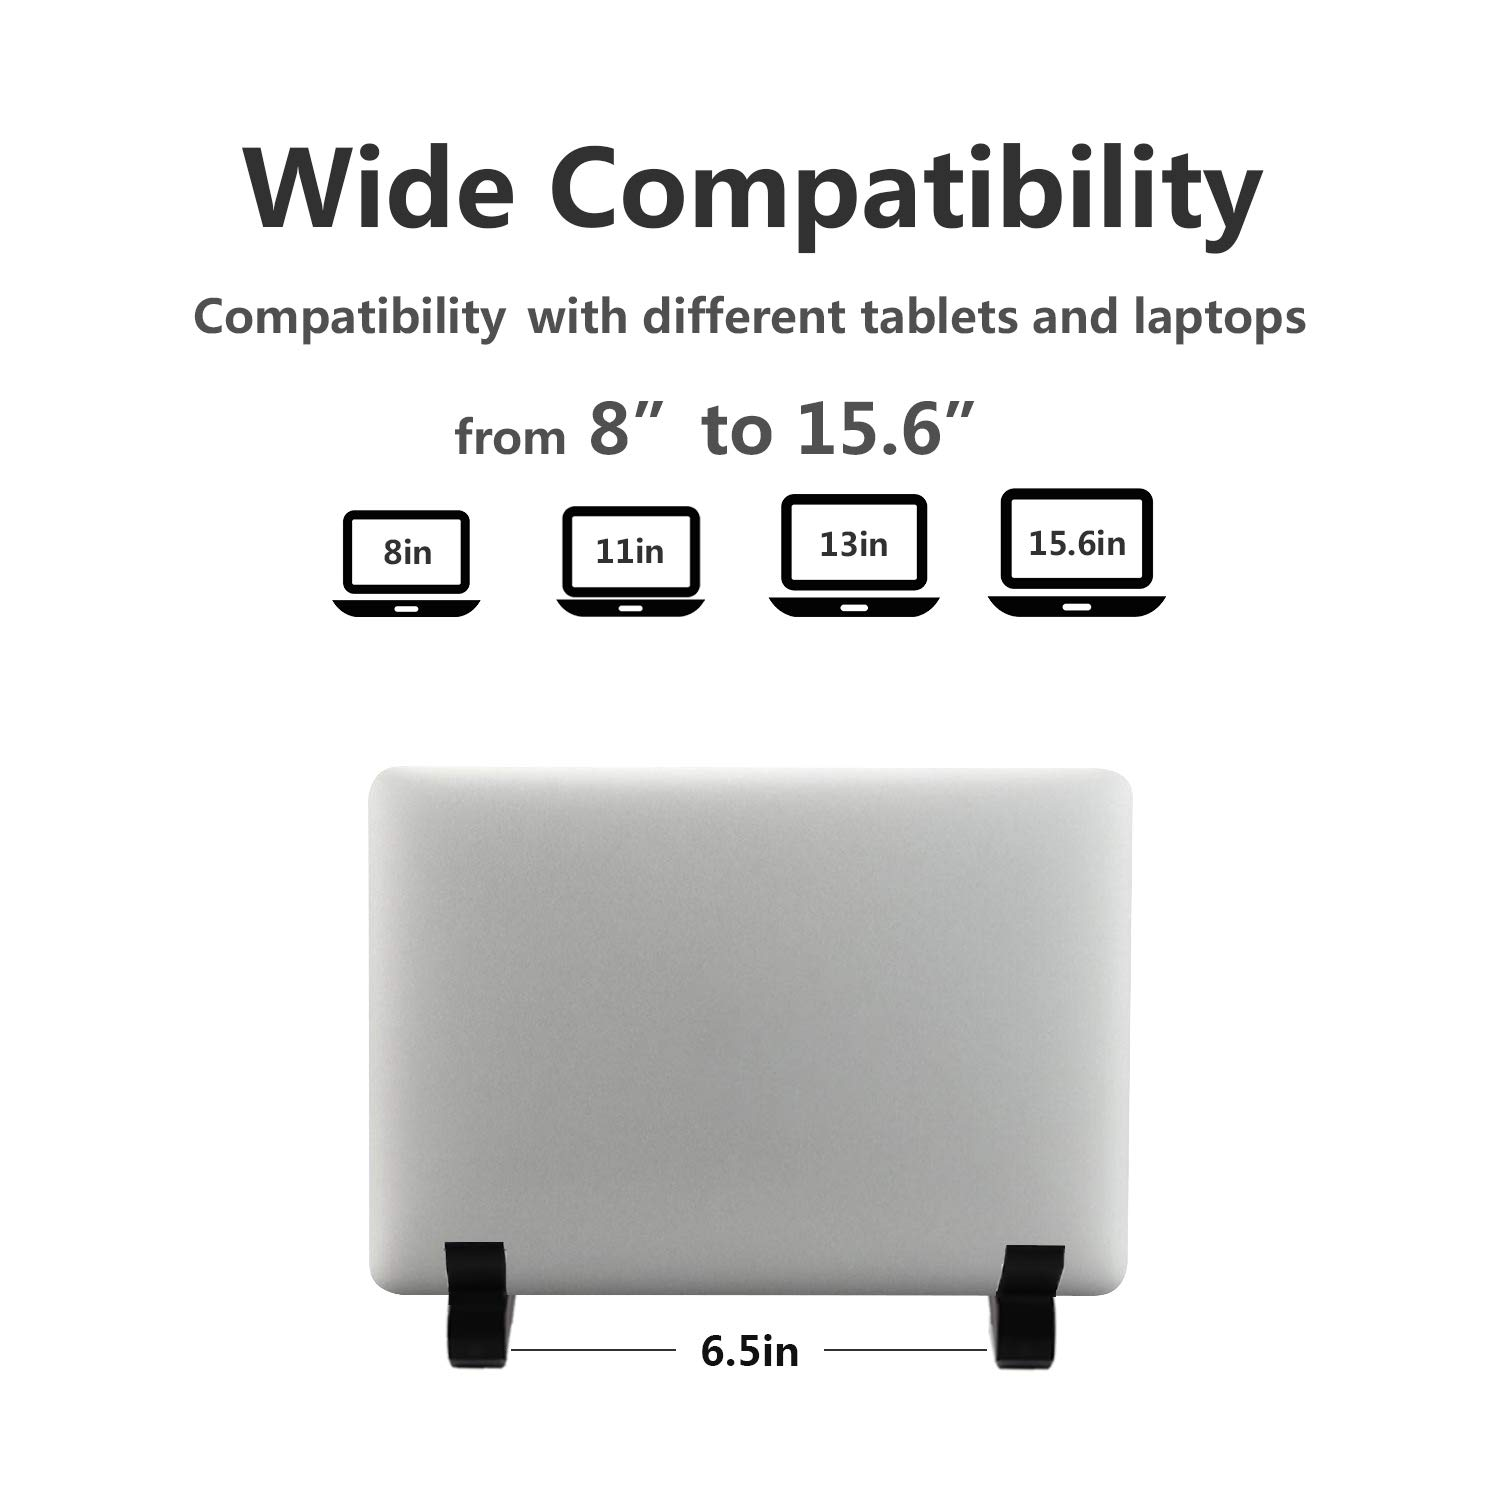 Laptop Stand Adjustable Tablet Stand Ergonomic Folding Laptop Stand Holder Lightweight Cooling Gaming Riser Compatible for 8 to 15.6 Macbook,Notebook,Computer,Travel,Laptop Cooler Tray White